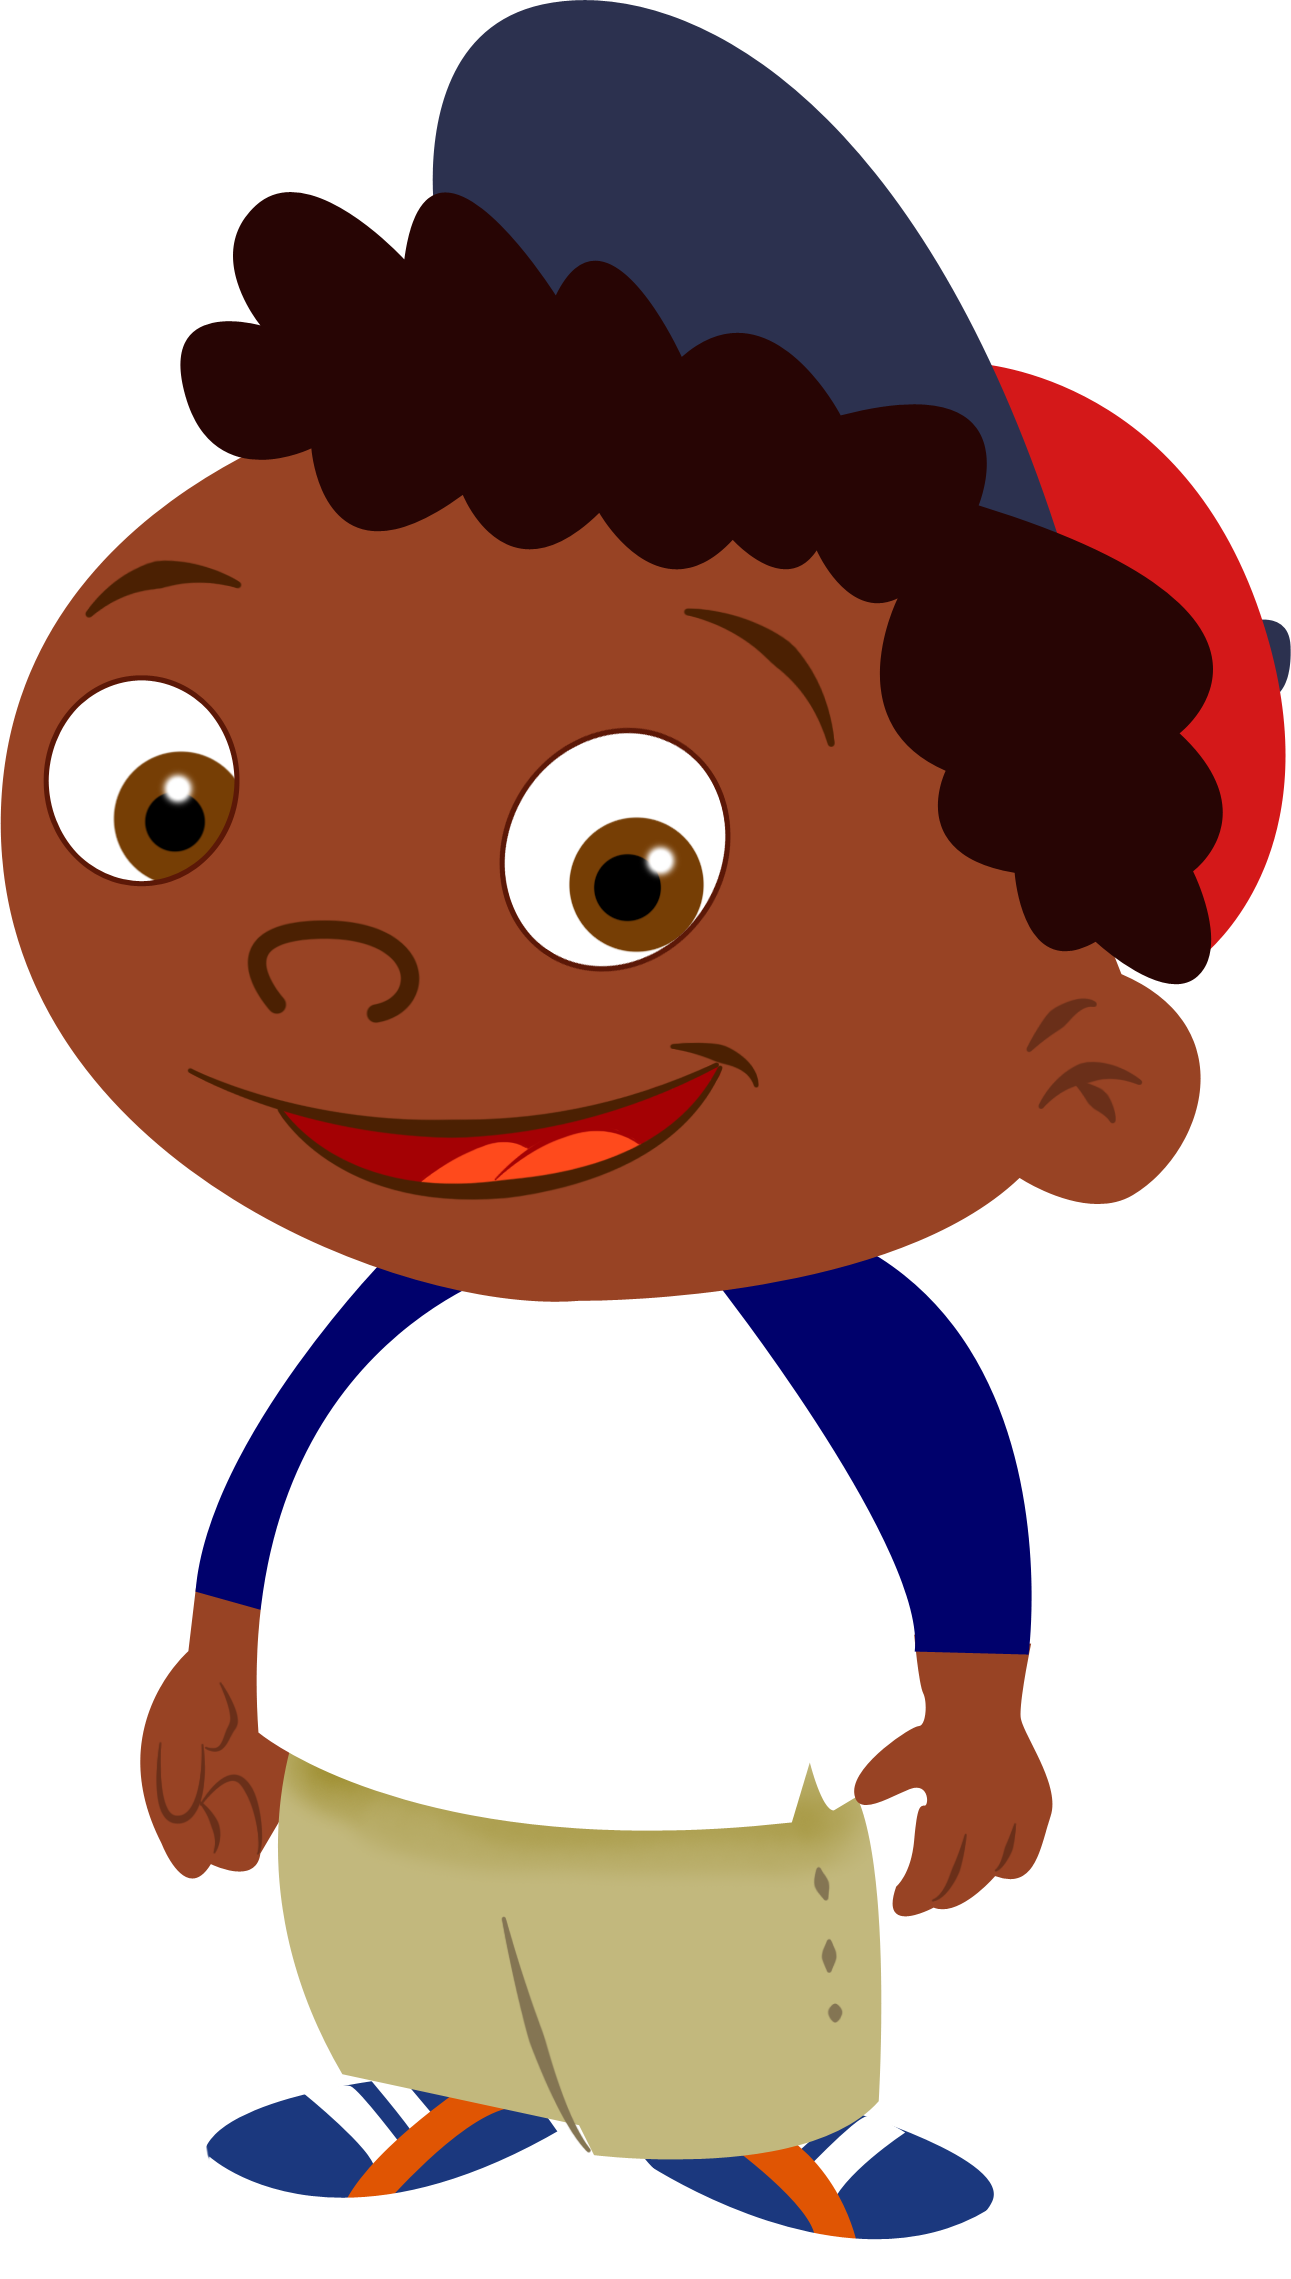 Uncategorized Quincy Little Einsteins image quincy in pilot png little einsteins wiki fandom png